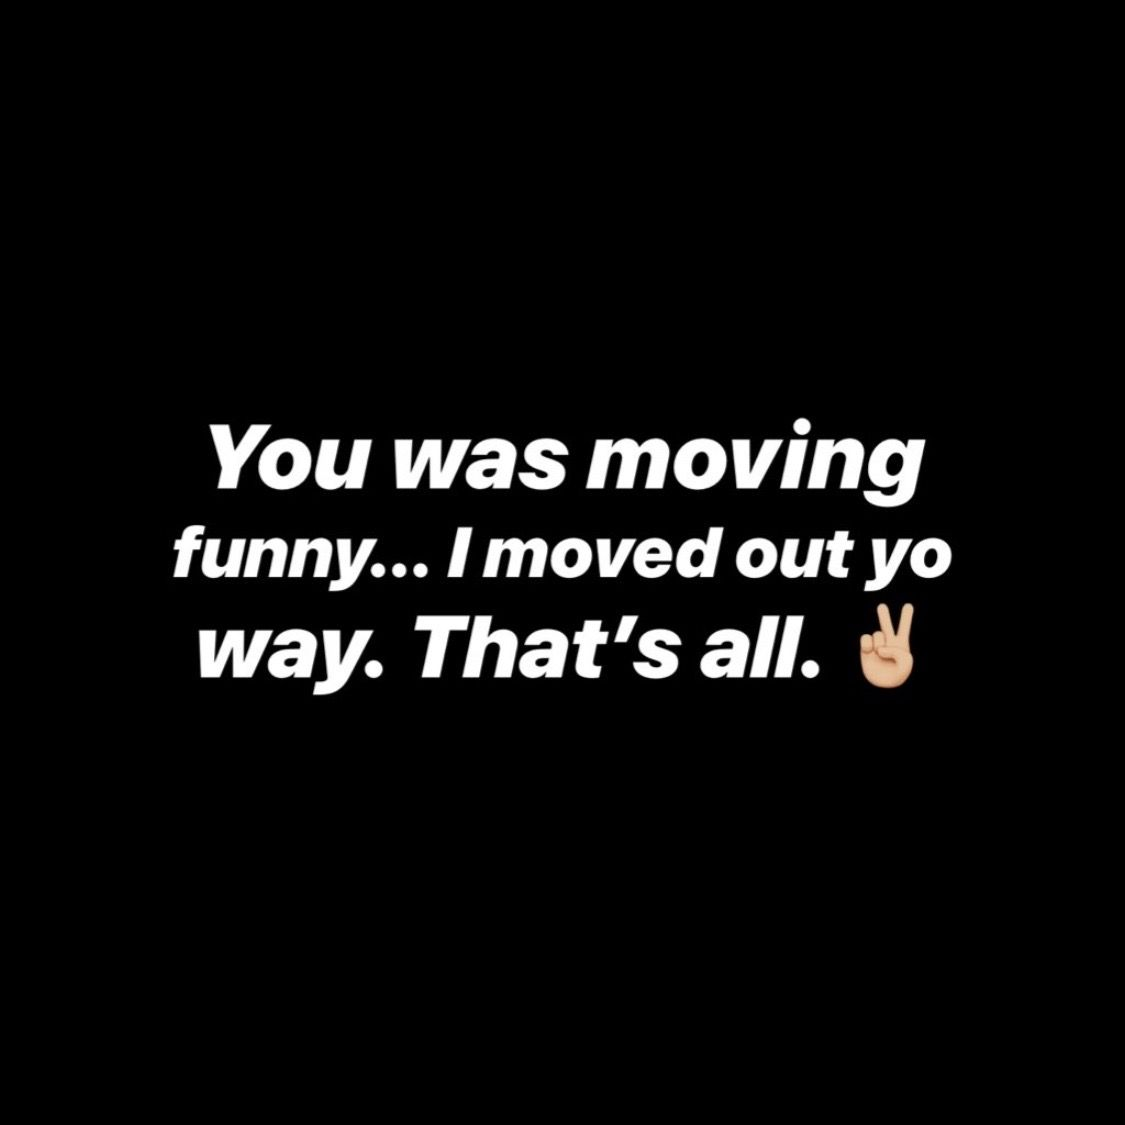 Moved Out Your Way Moving Out Broken Relationships Words